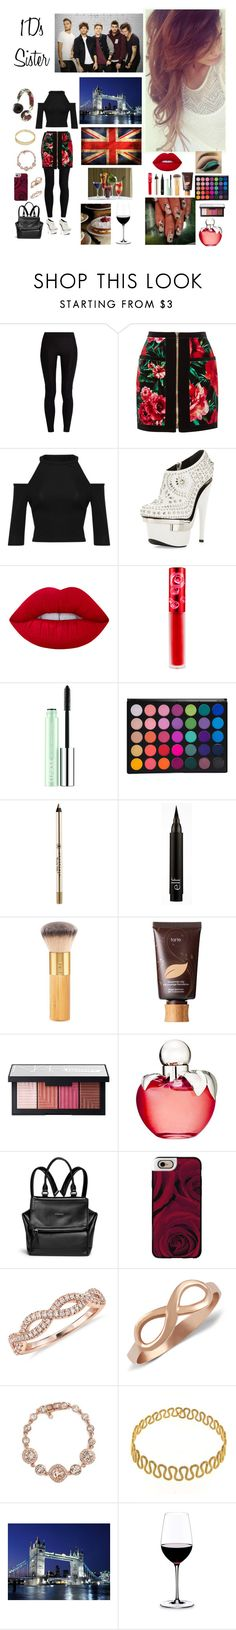 """1D's Sister"" by hetalia2013 ❤ liked on Polyvore featuring The Upside, Balmain, WearAll, Versace, Lime Crime, Clinique, Anastasia Beverly Hills, tarte, NARS Cosmetics and Nina Ricci"